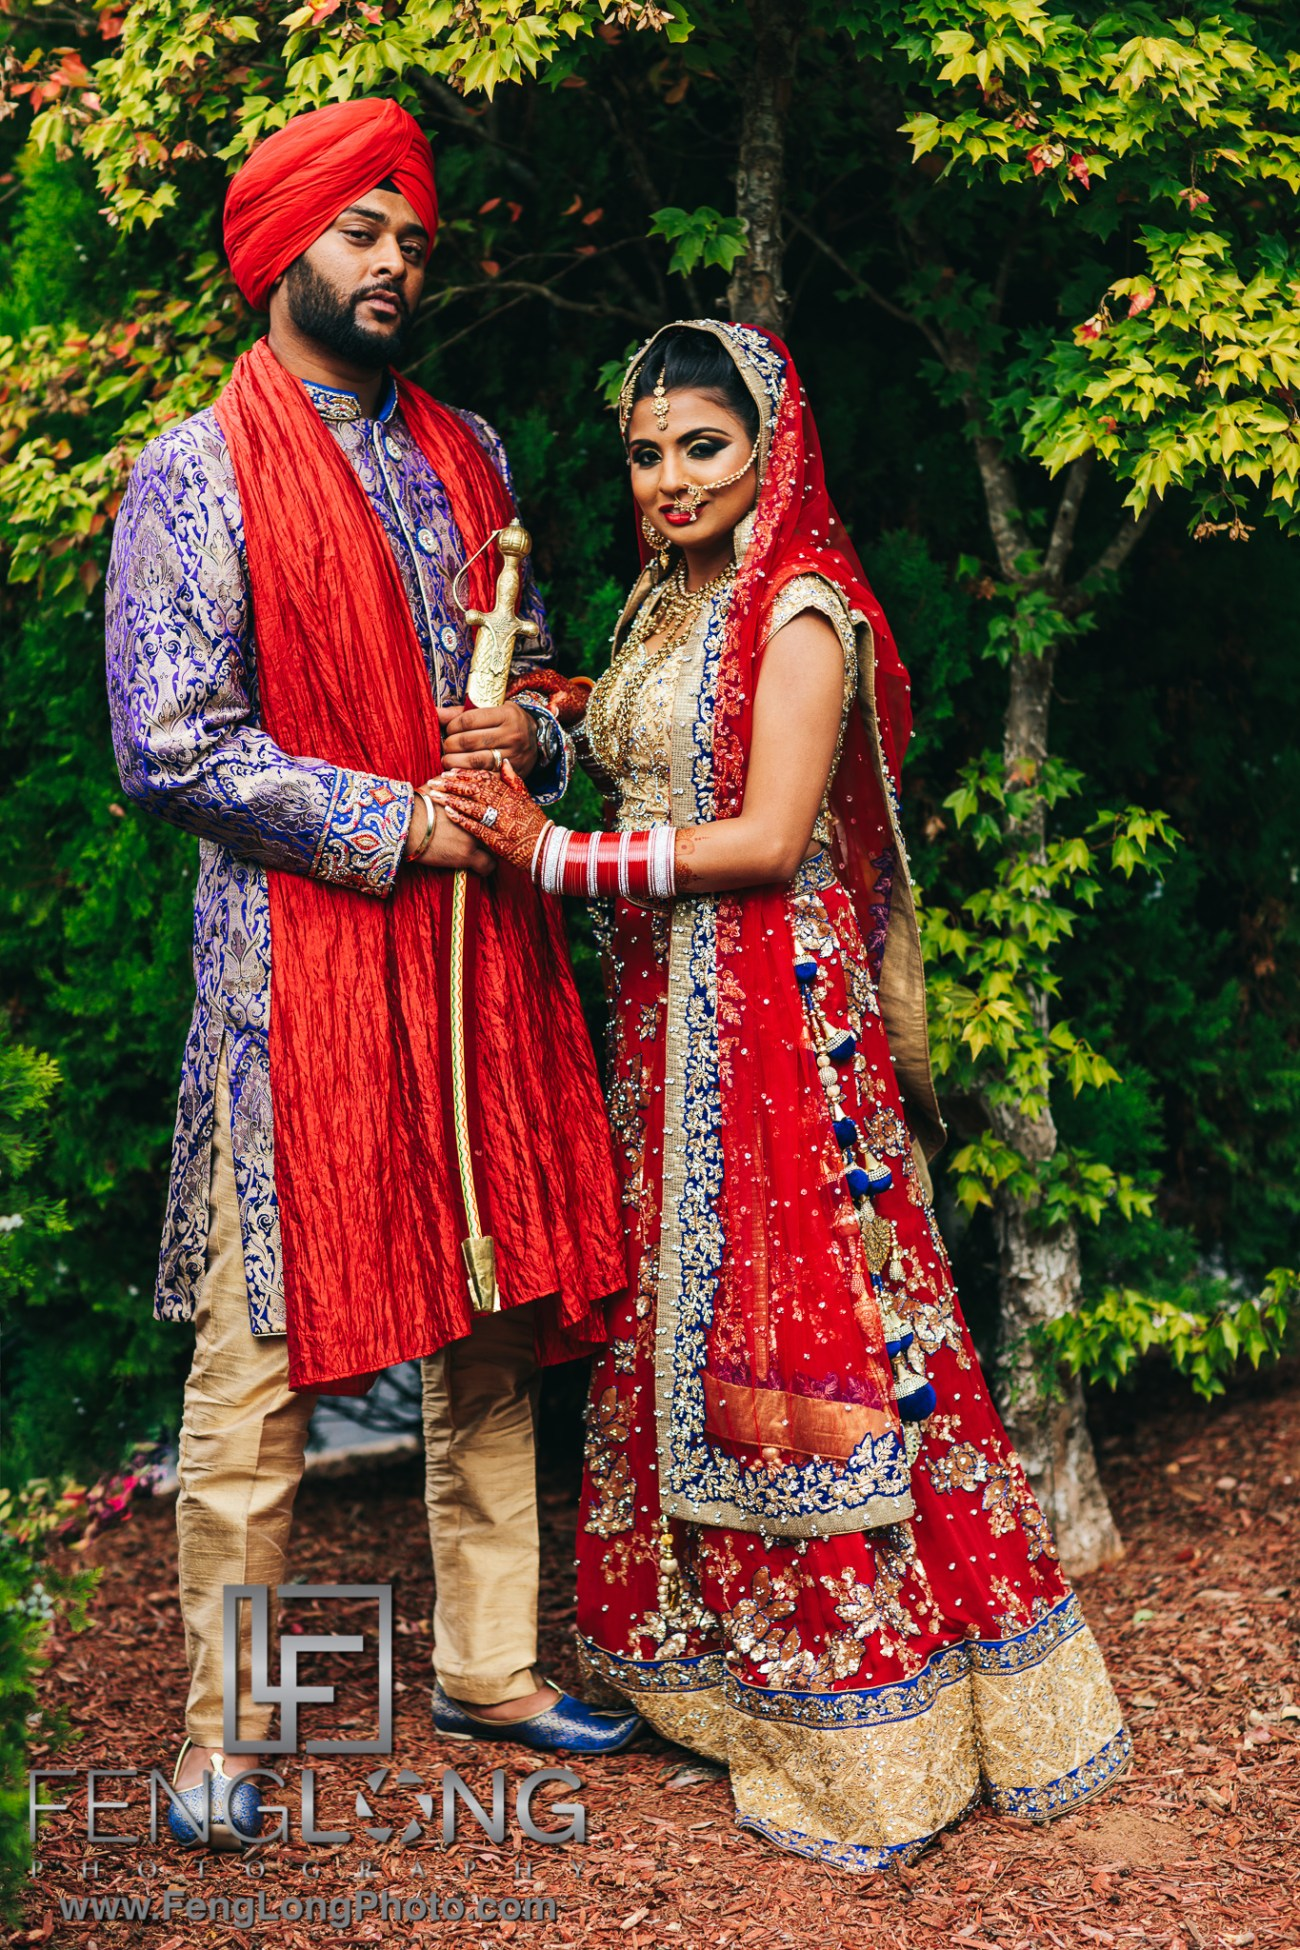 Sikh Indian Wedding Photography Ceremony Bride and Groom